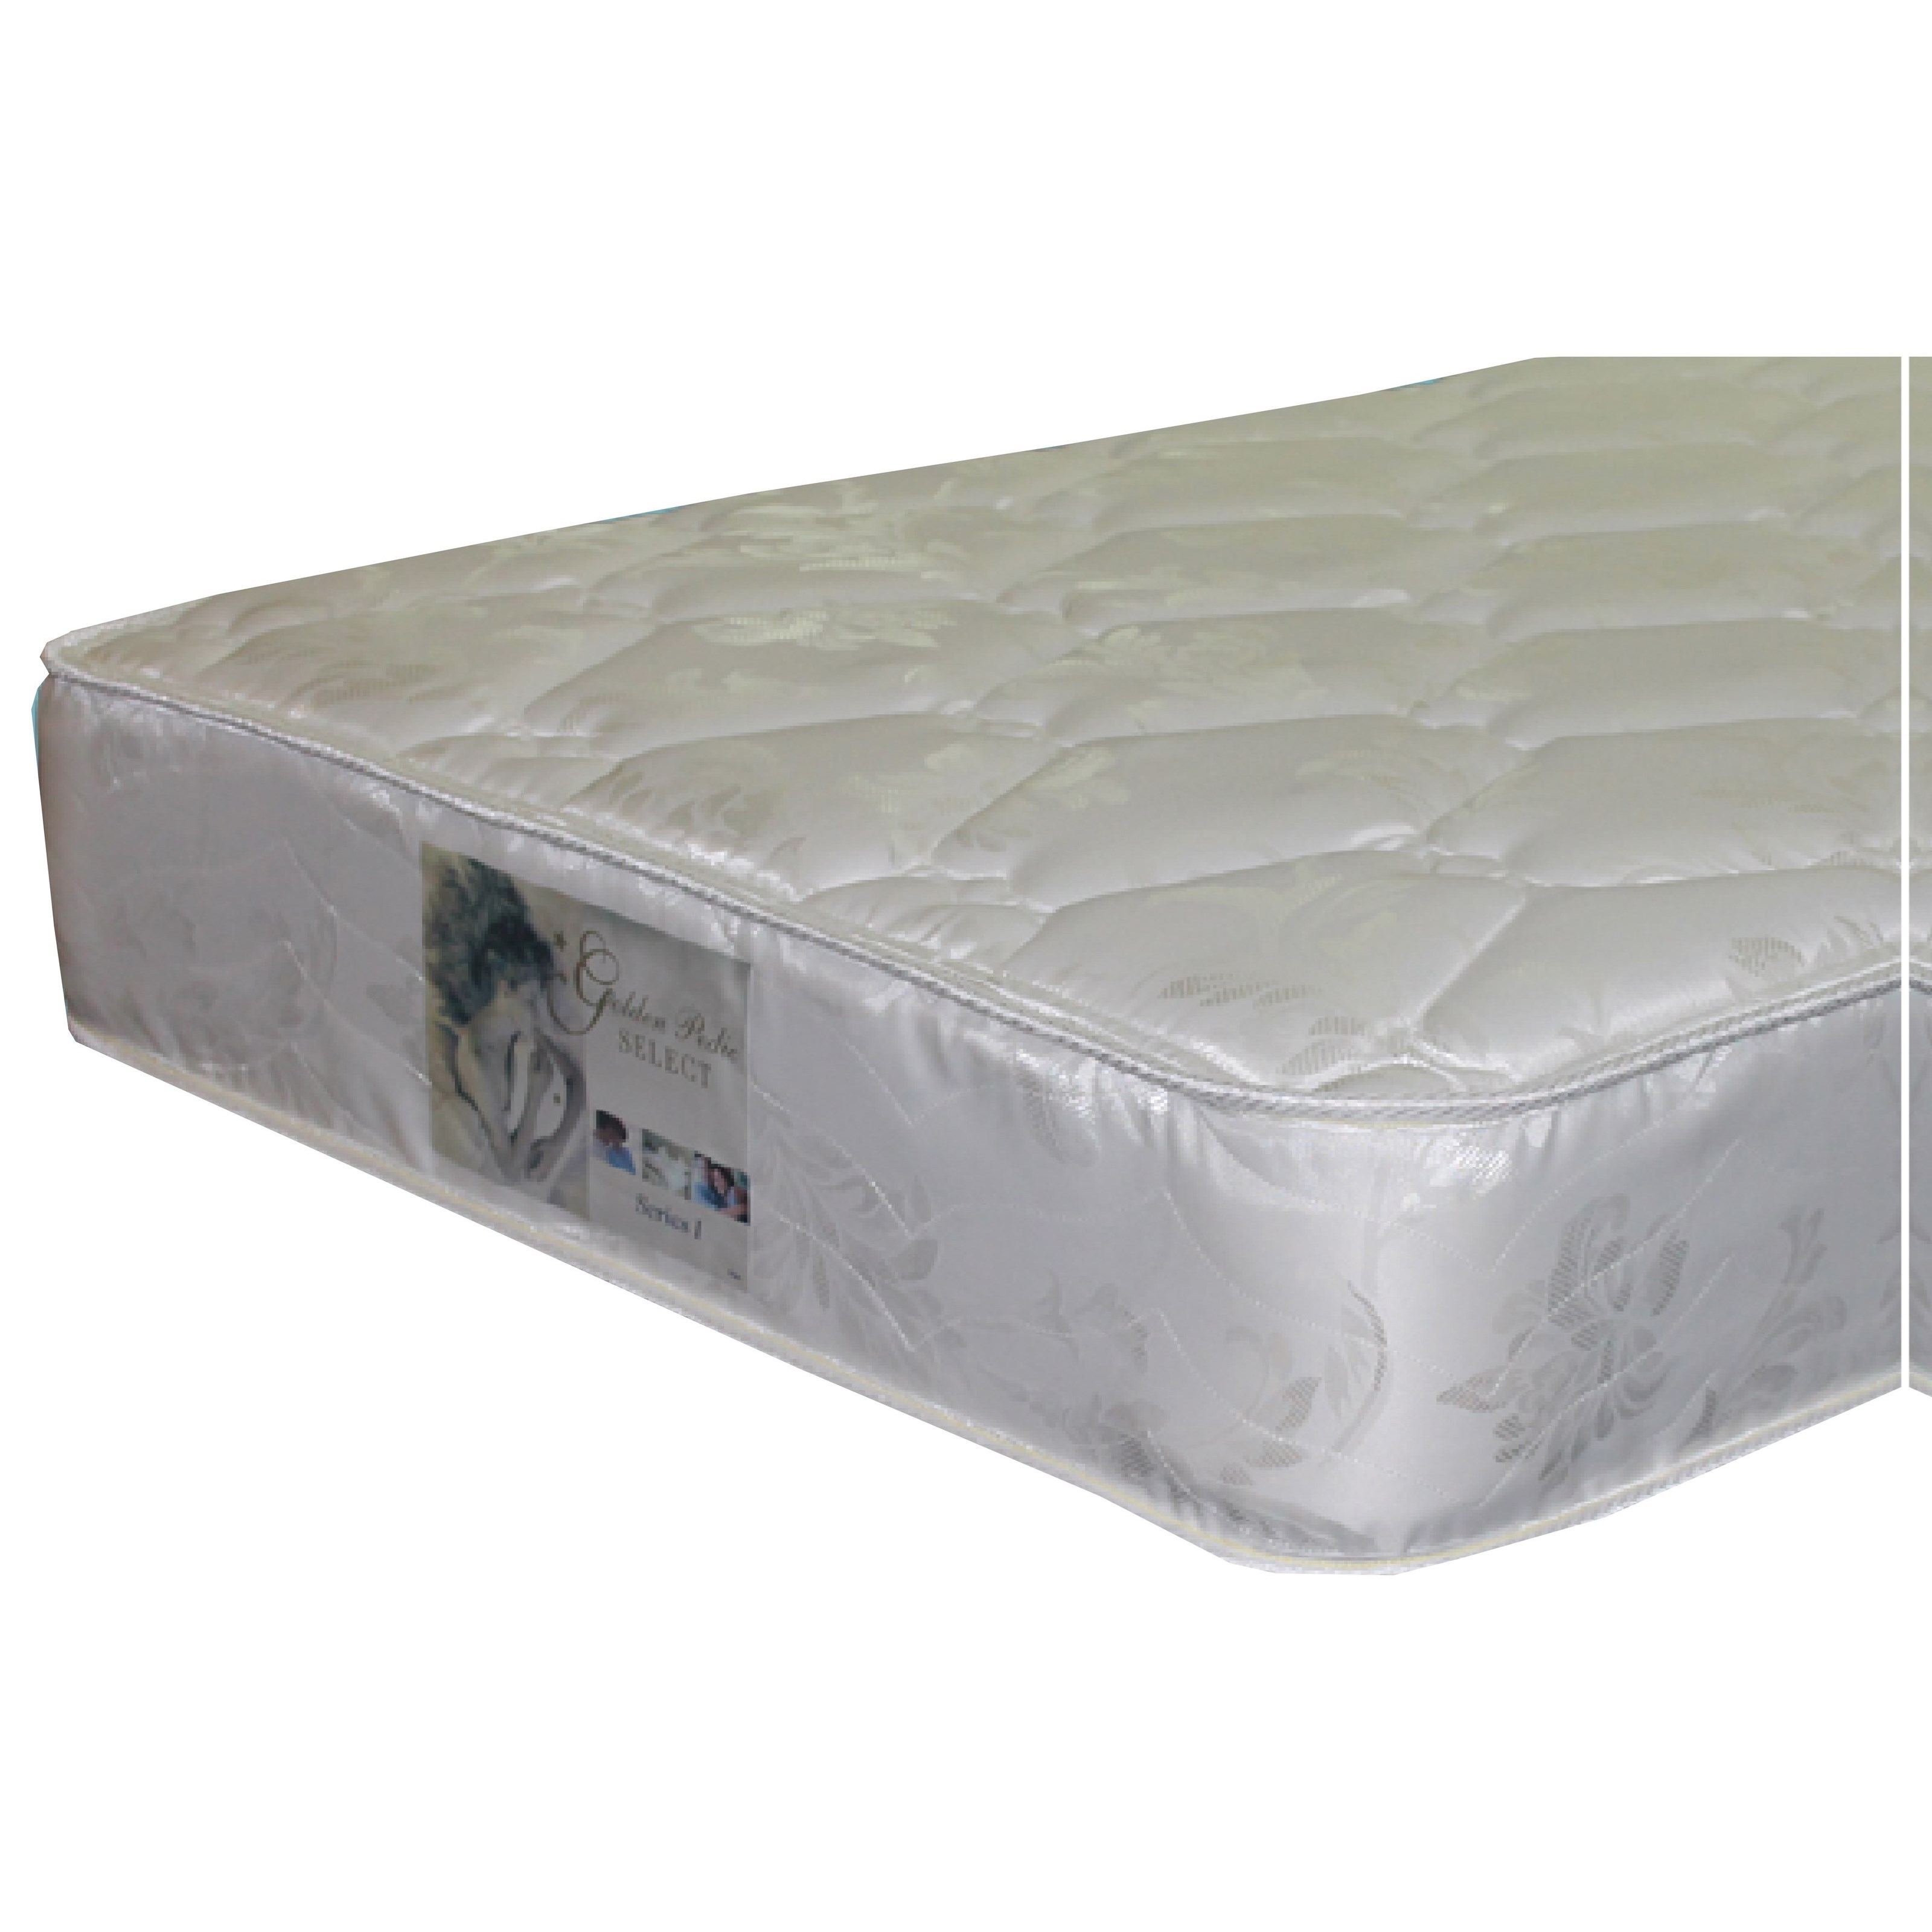 Golden Mattress Company 5-Series I Double Sided Plush Twin Two Sided Plush Mattress - Item Number: 5-SeriesIPL-T